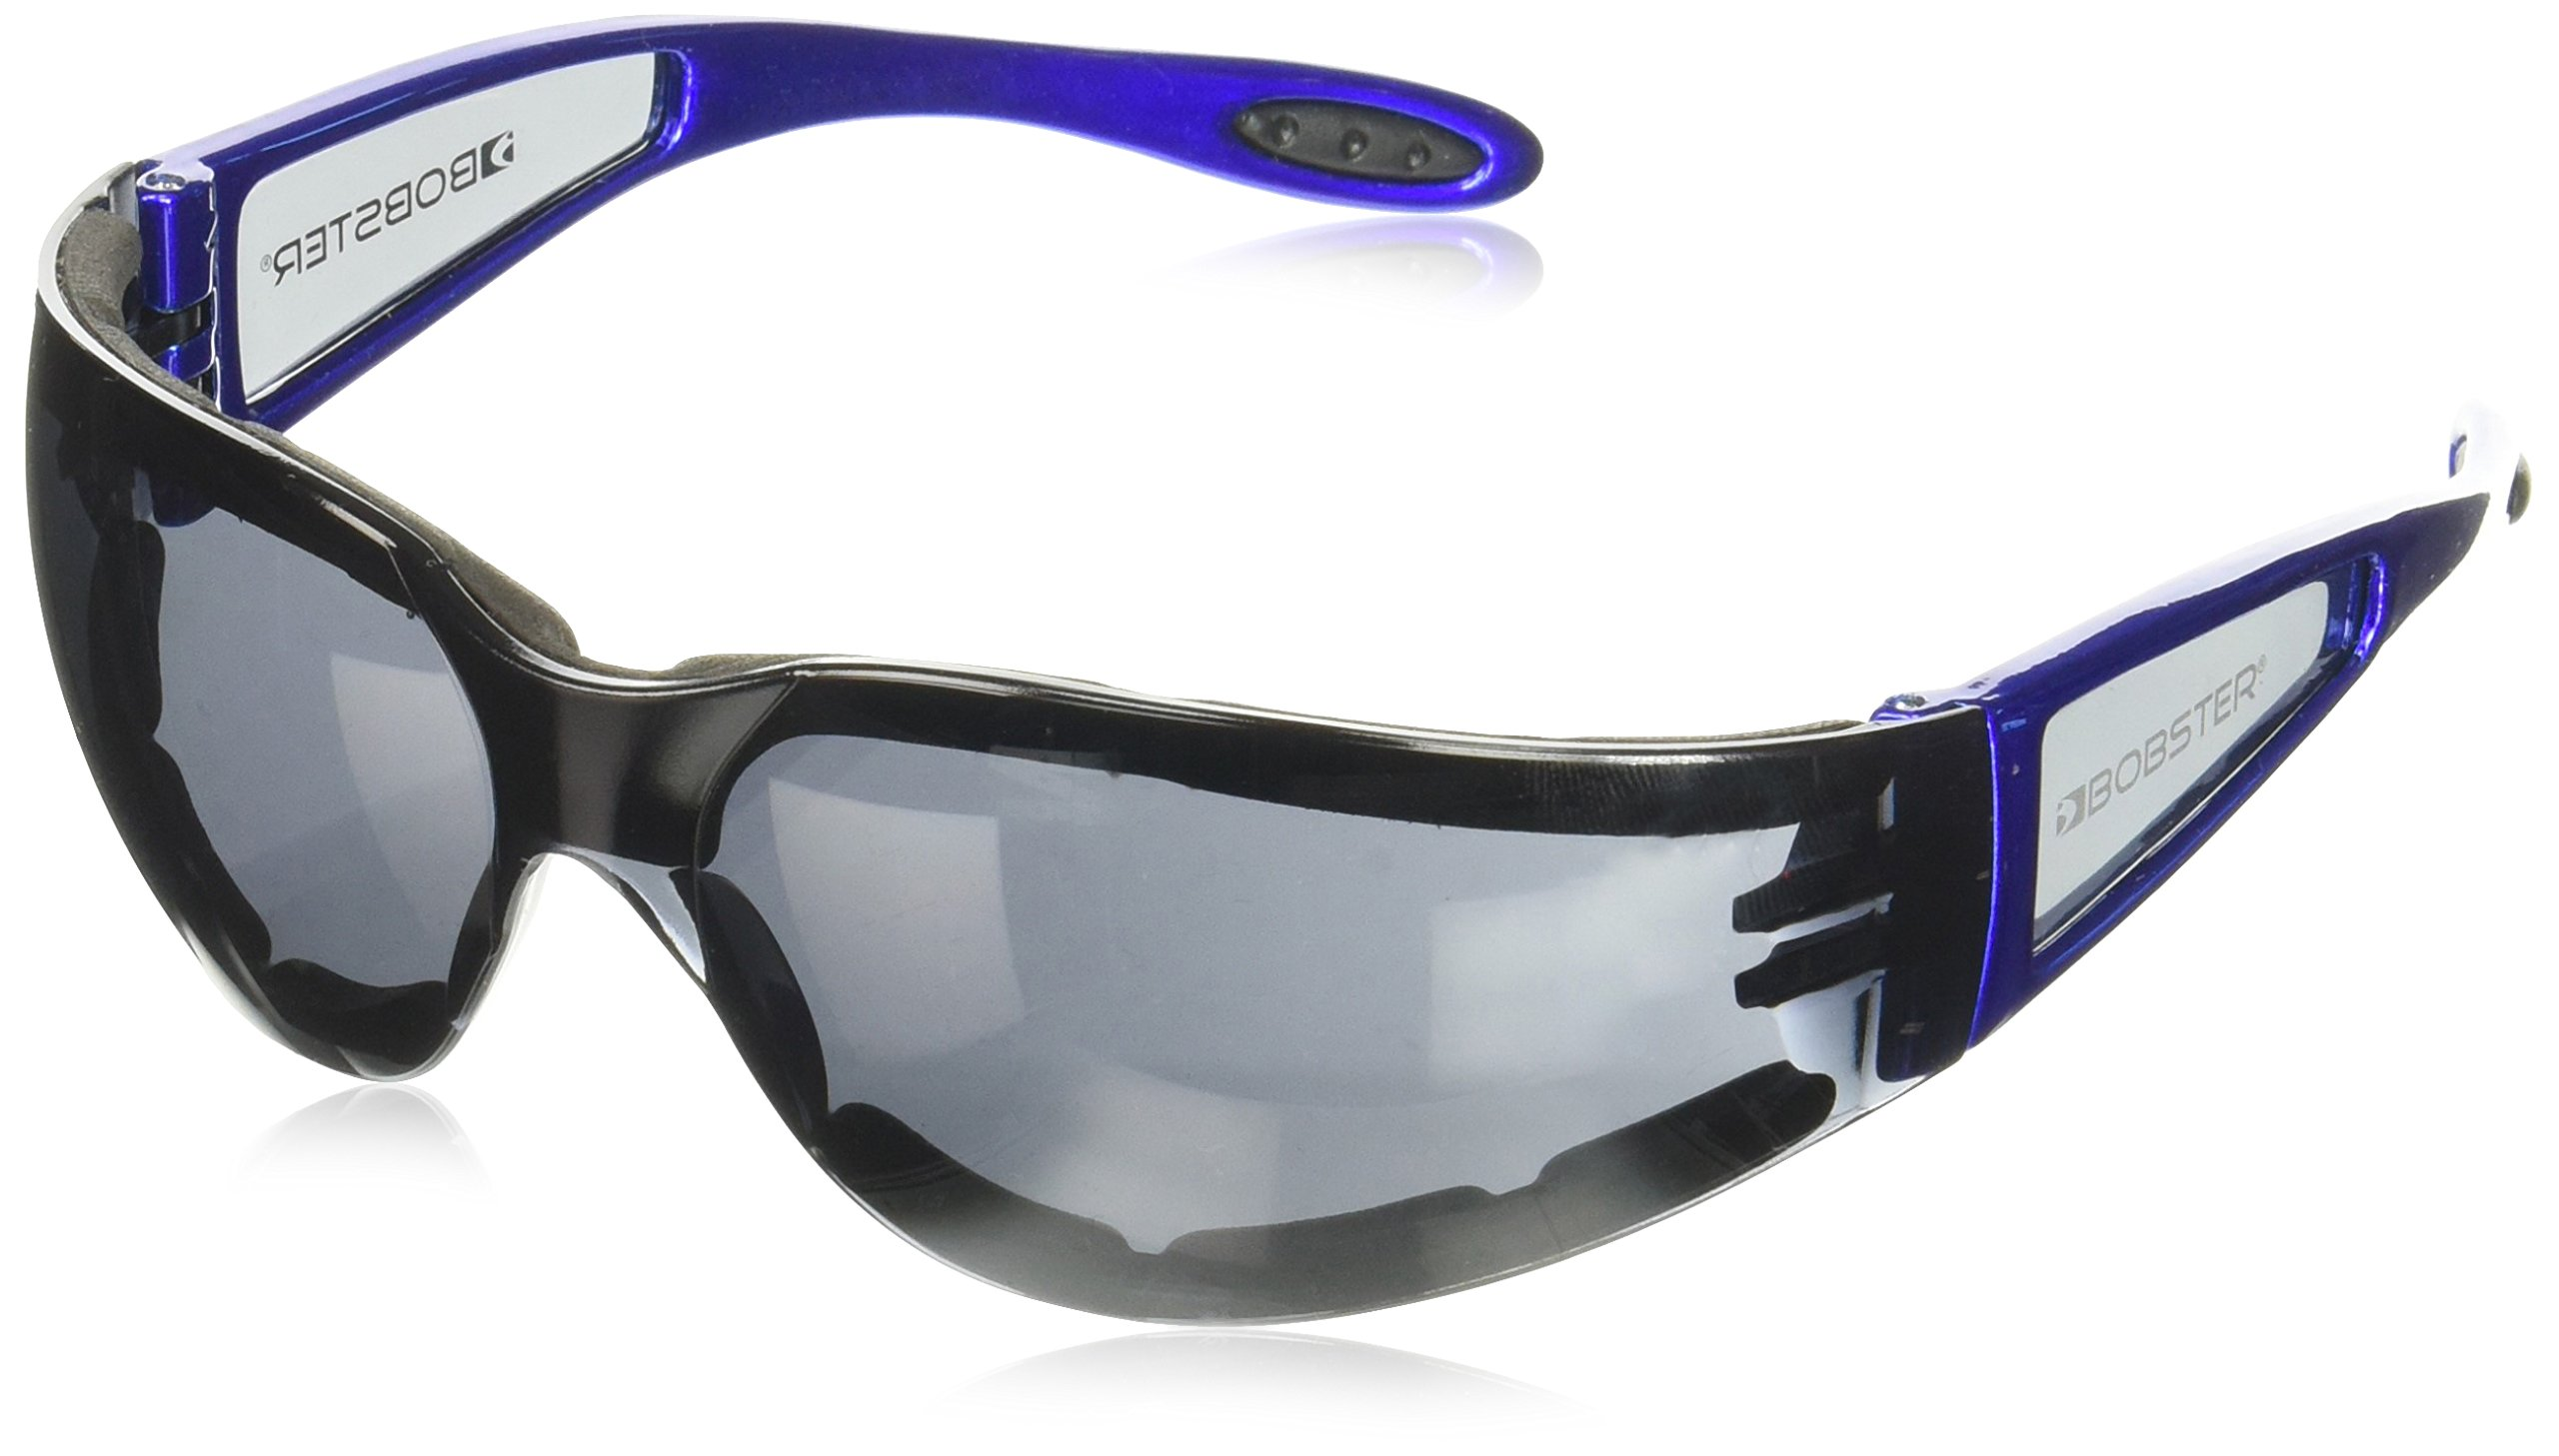 Bobster Shield 2 Sunglasses, Blue Frame/Smoked Lens, Closed Cell